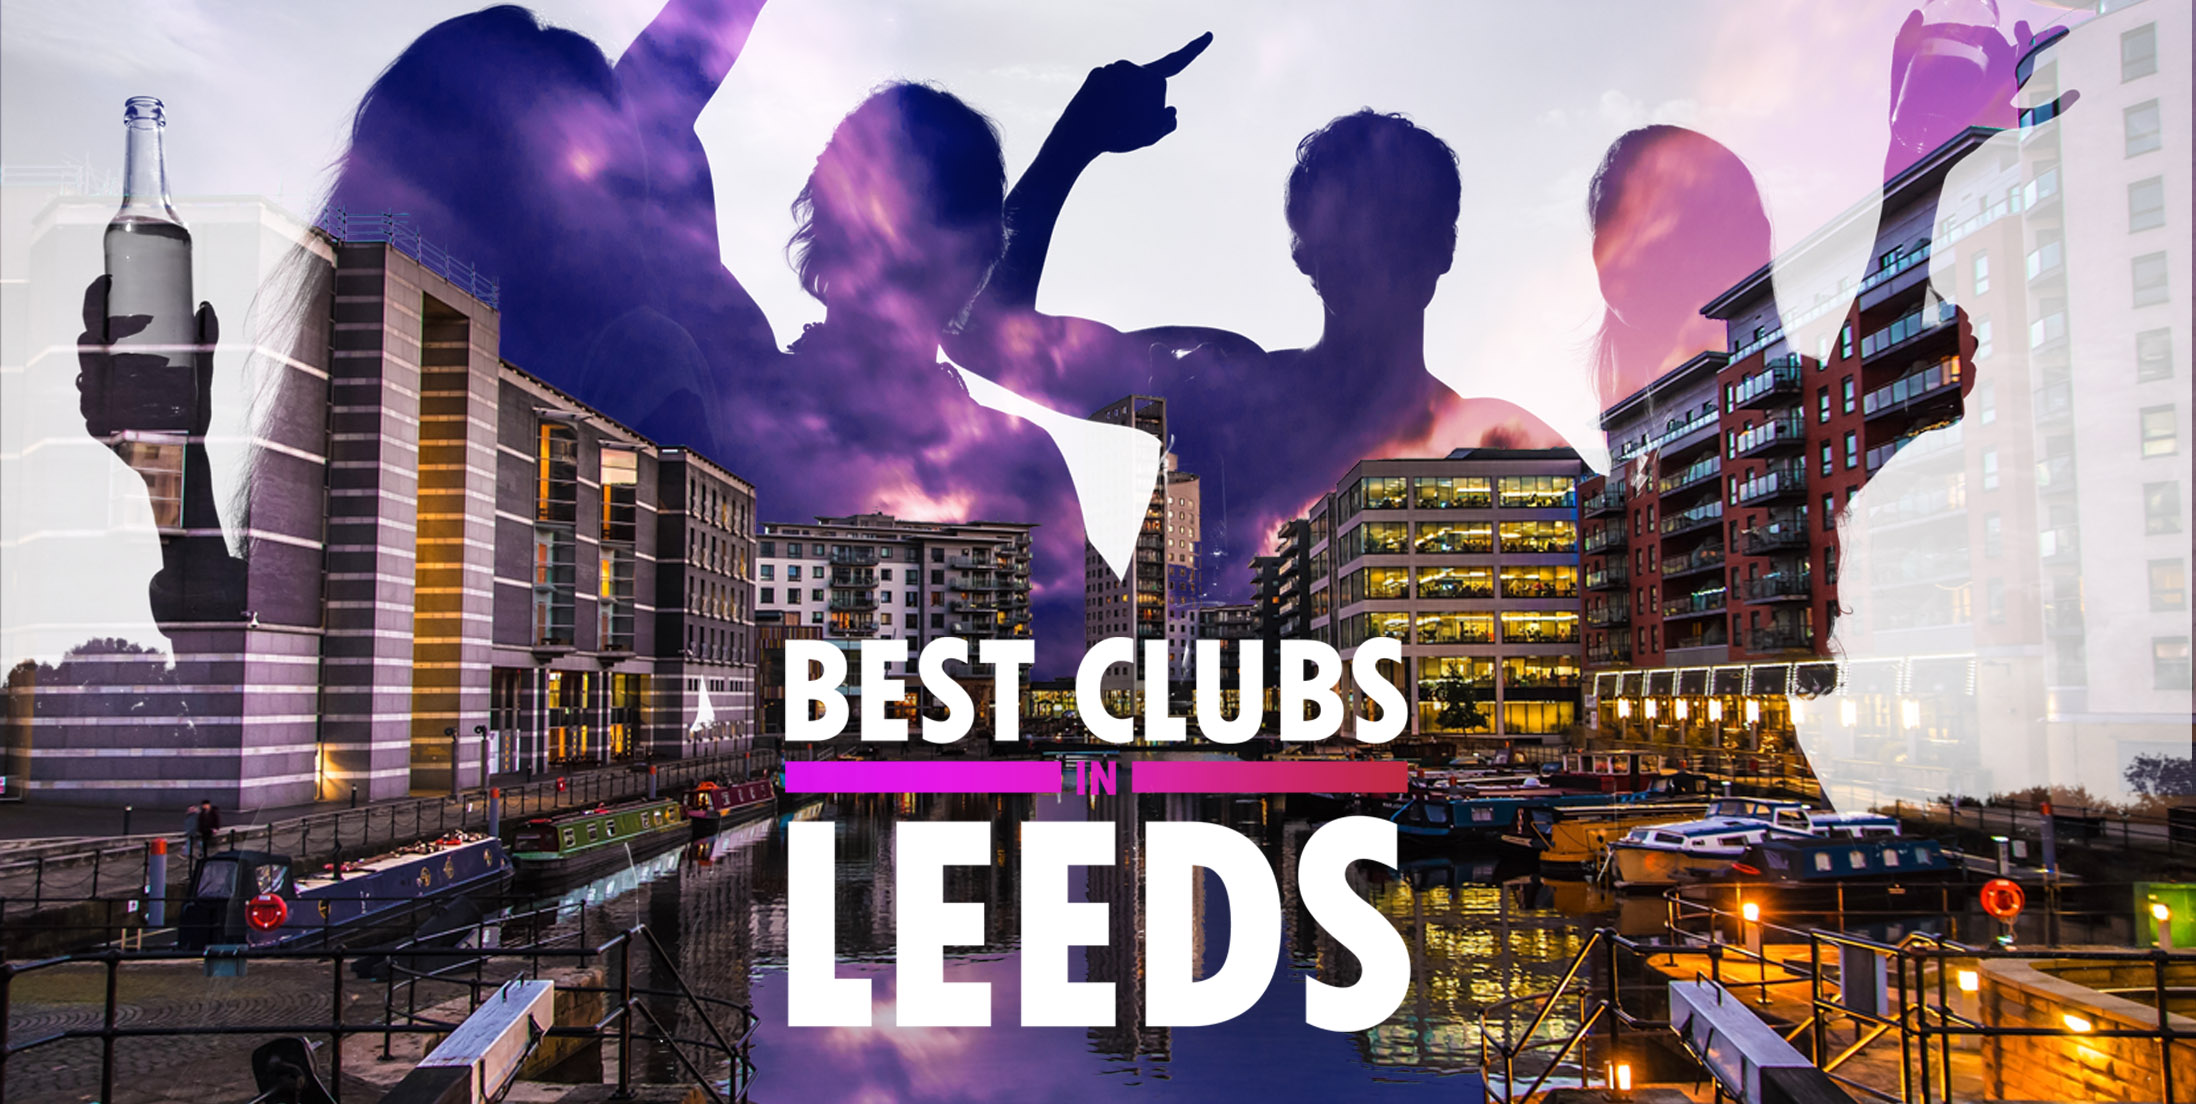 Best Clubs in Leeds